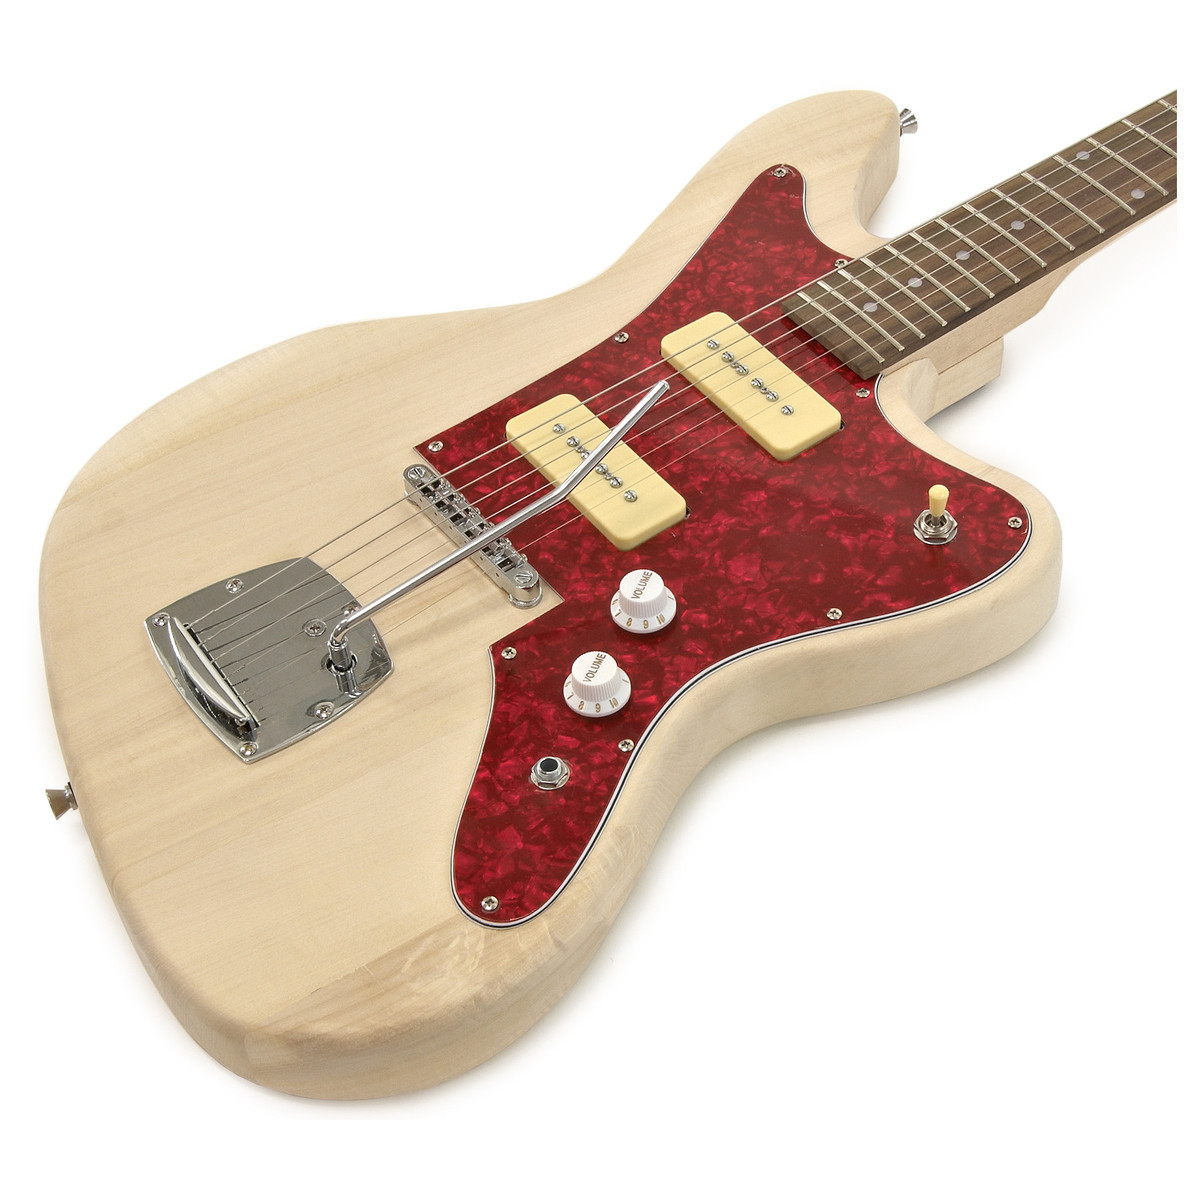 Best ideas about DIY Electric Guitar . Save or Pin Seattle Jazz Electric Guitar DIY Kit at Gear4music Now.